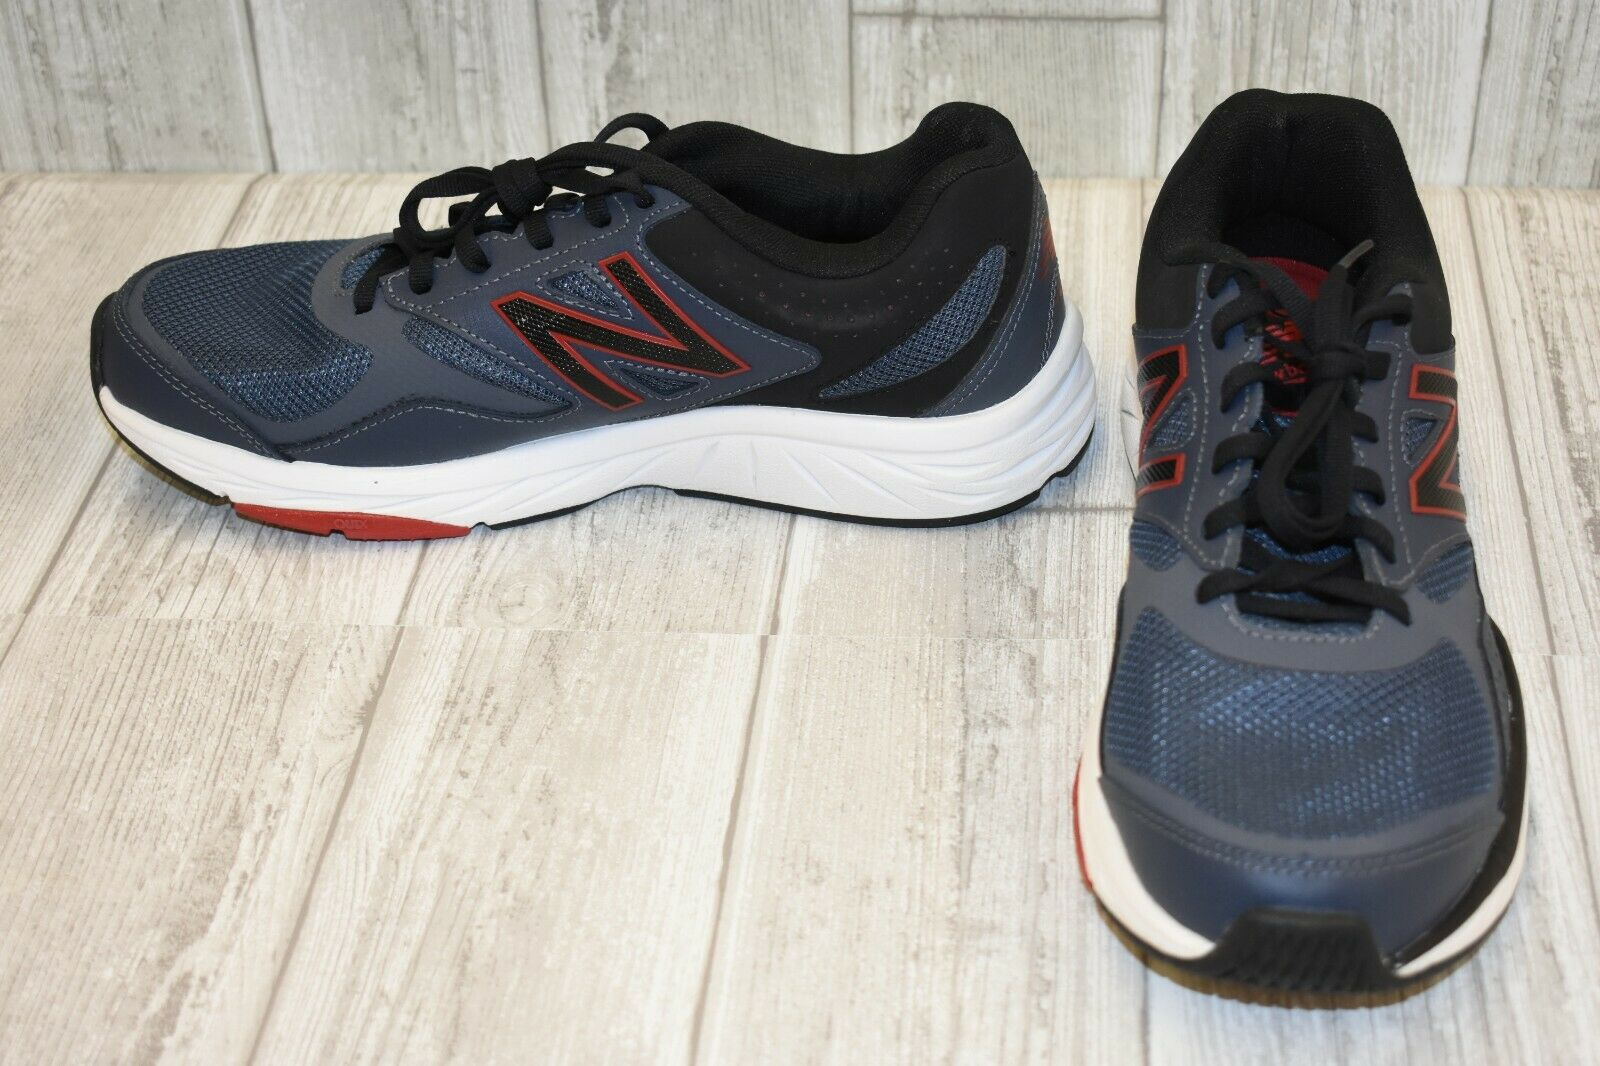 New Balance MX824GR1 Training shoes - Men's Size 8.5 D - Navy Red